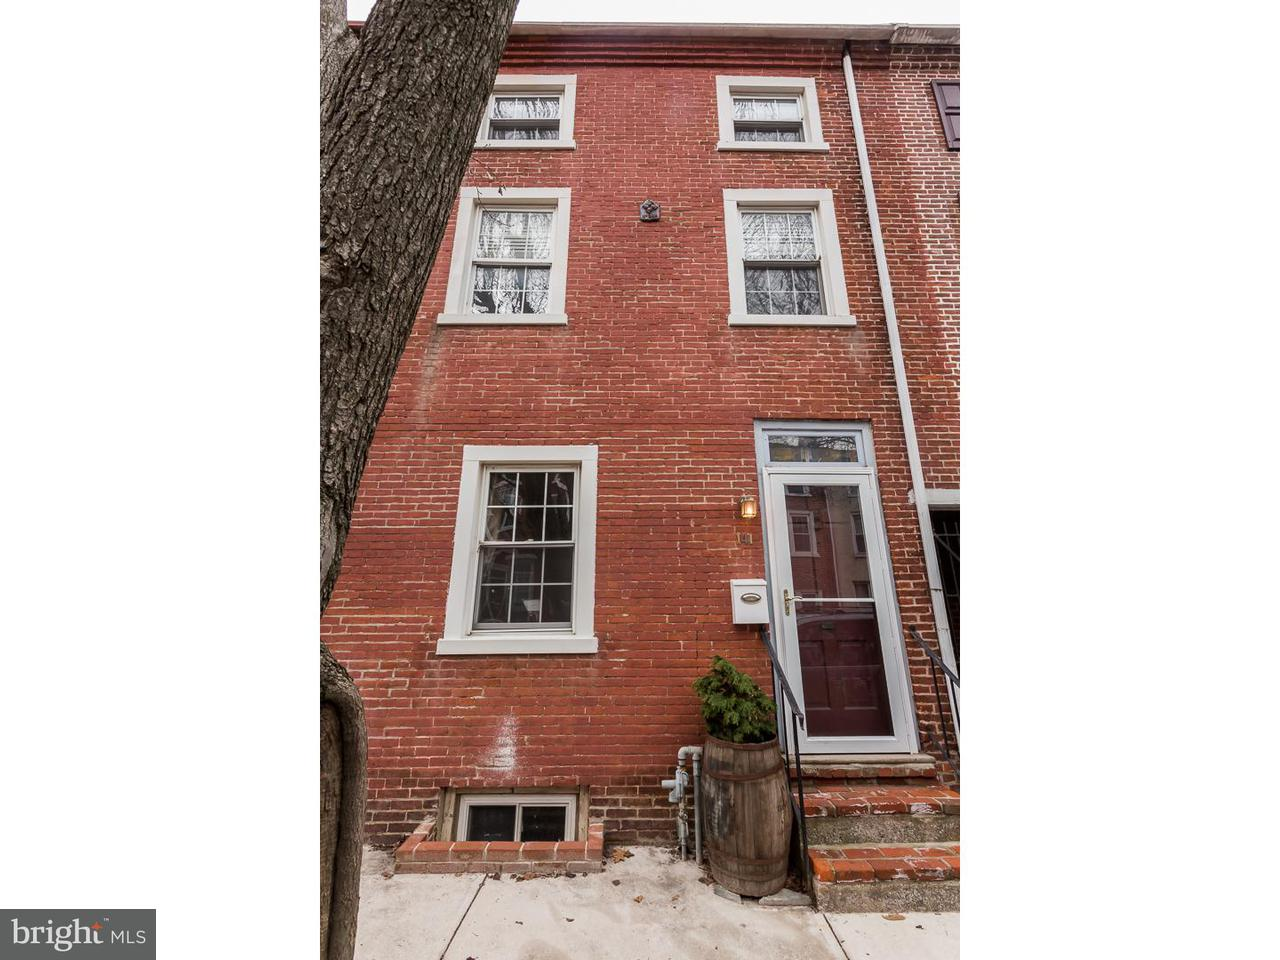 141 E Miner West Chester, PA 19382